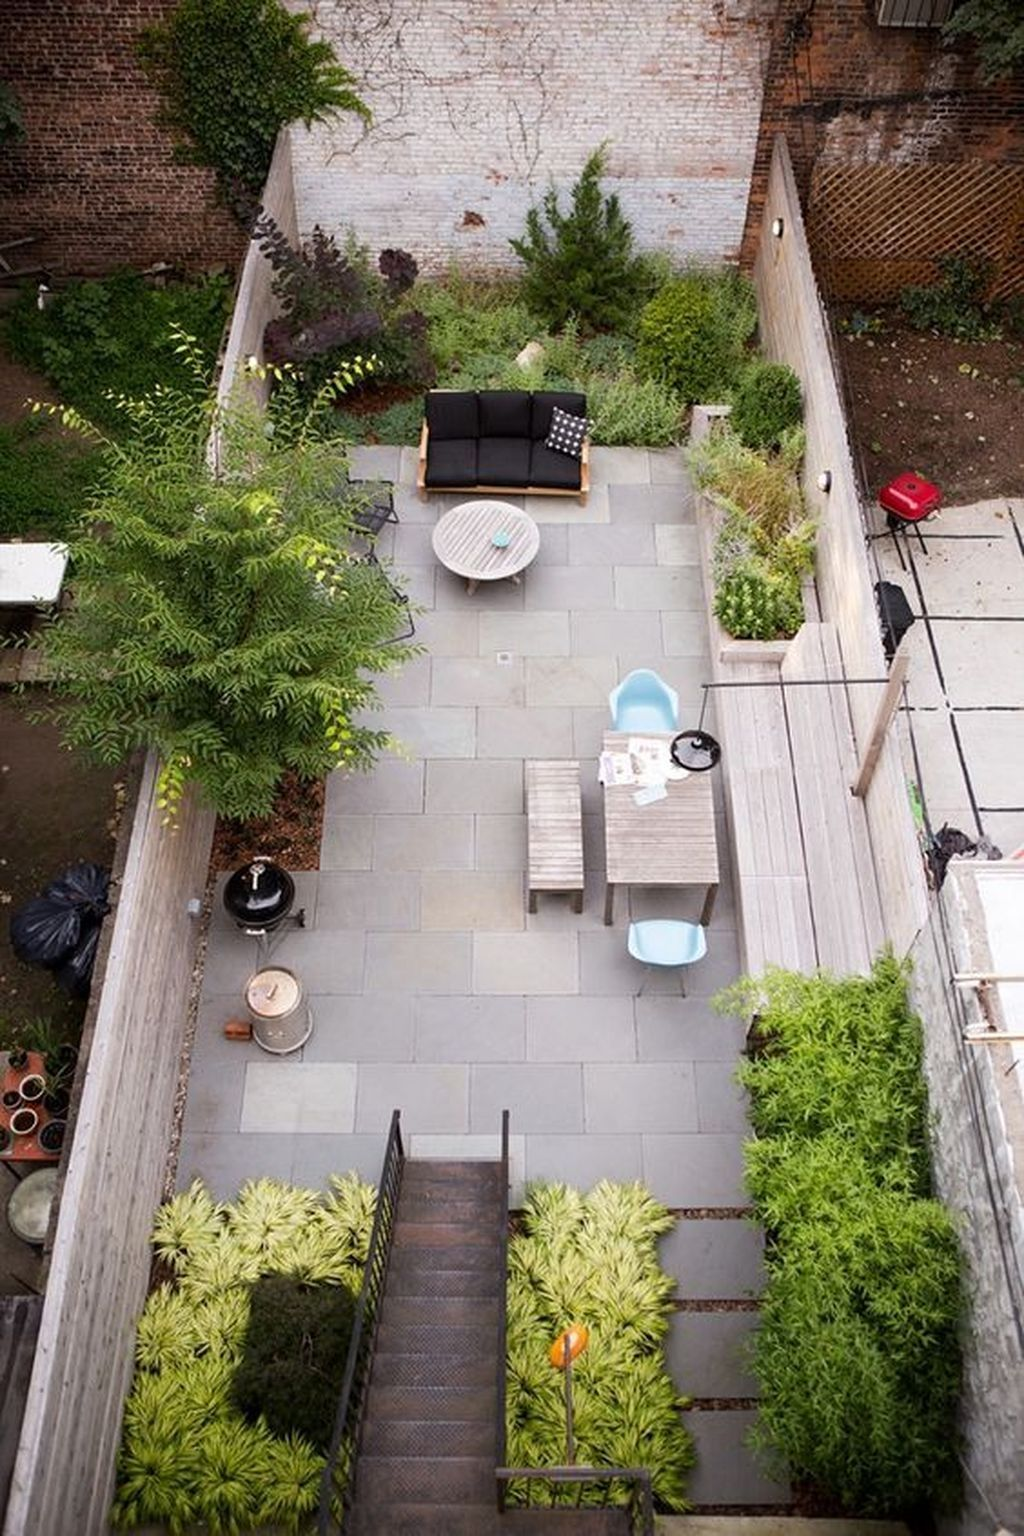 10 Awesome Ways How to Improve Townhouse Backyard Landscaping